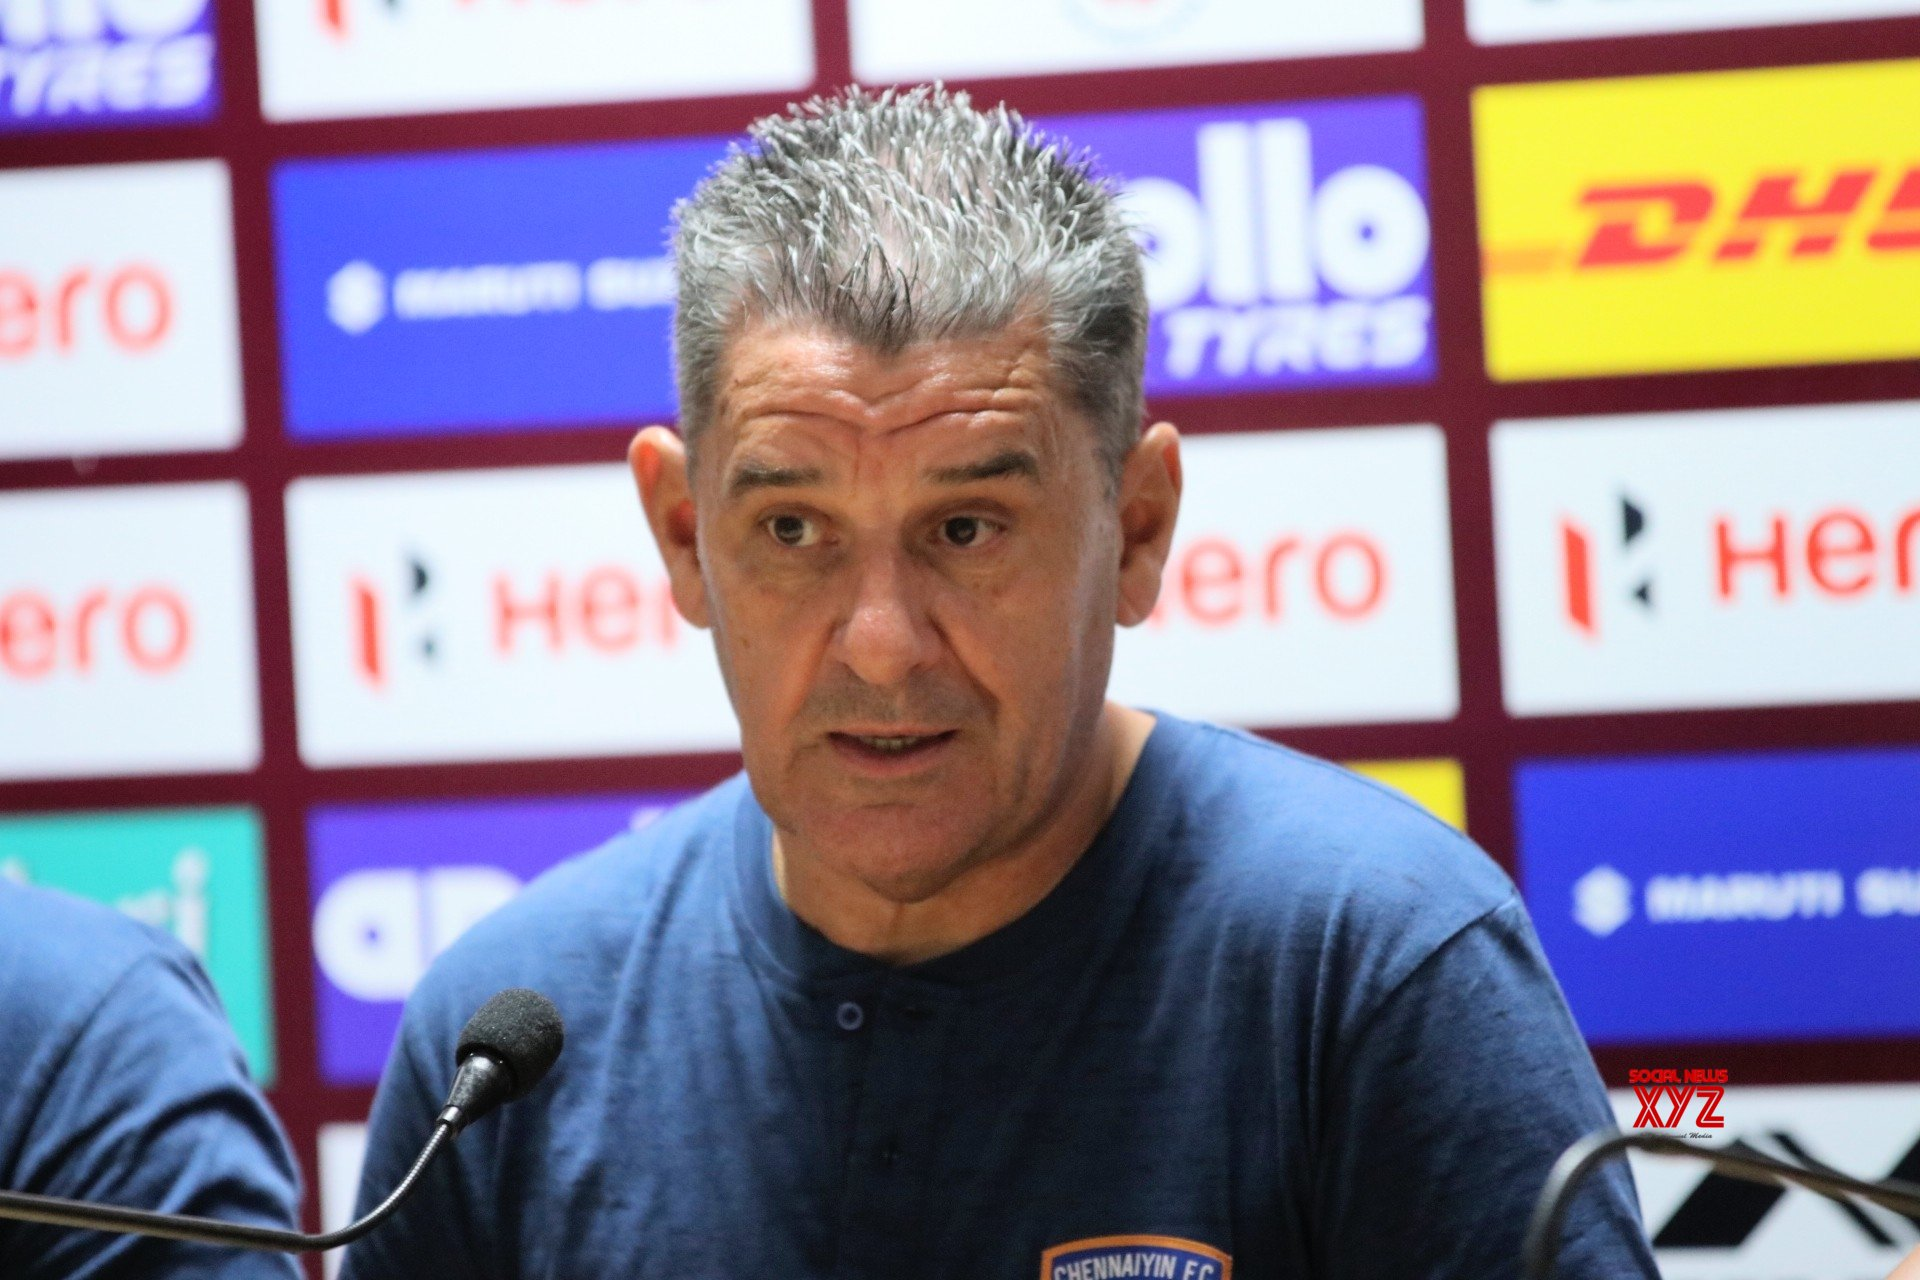 More than a football match against Bengaluru: Gregory